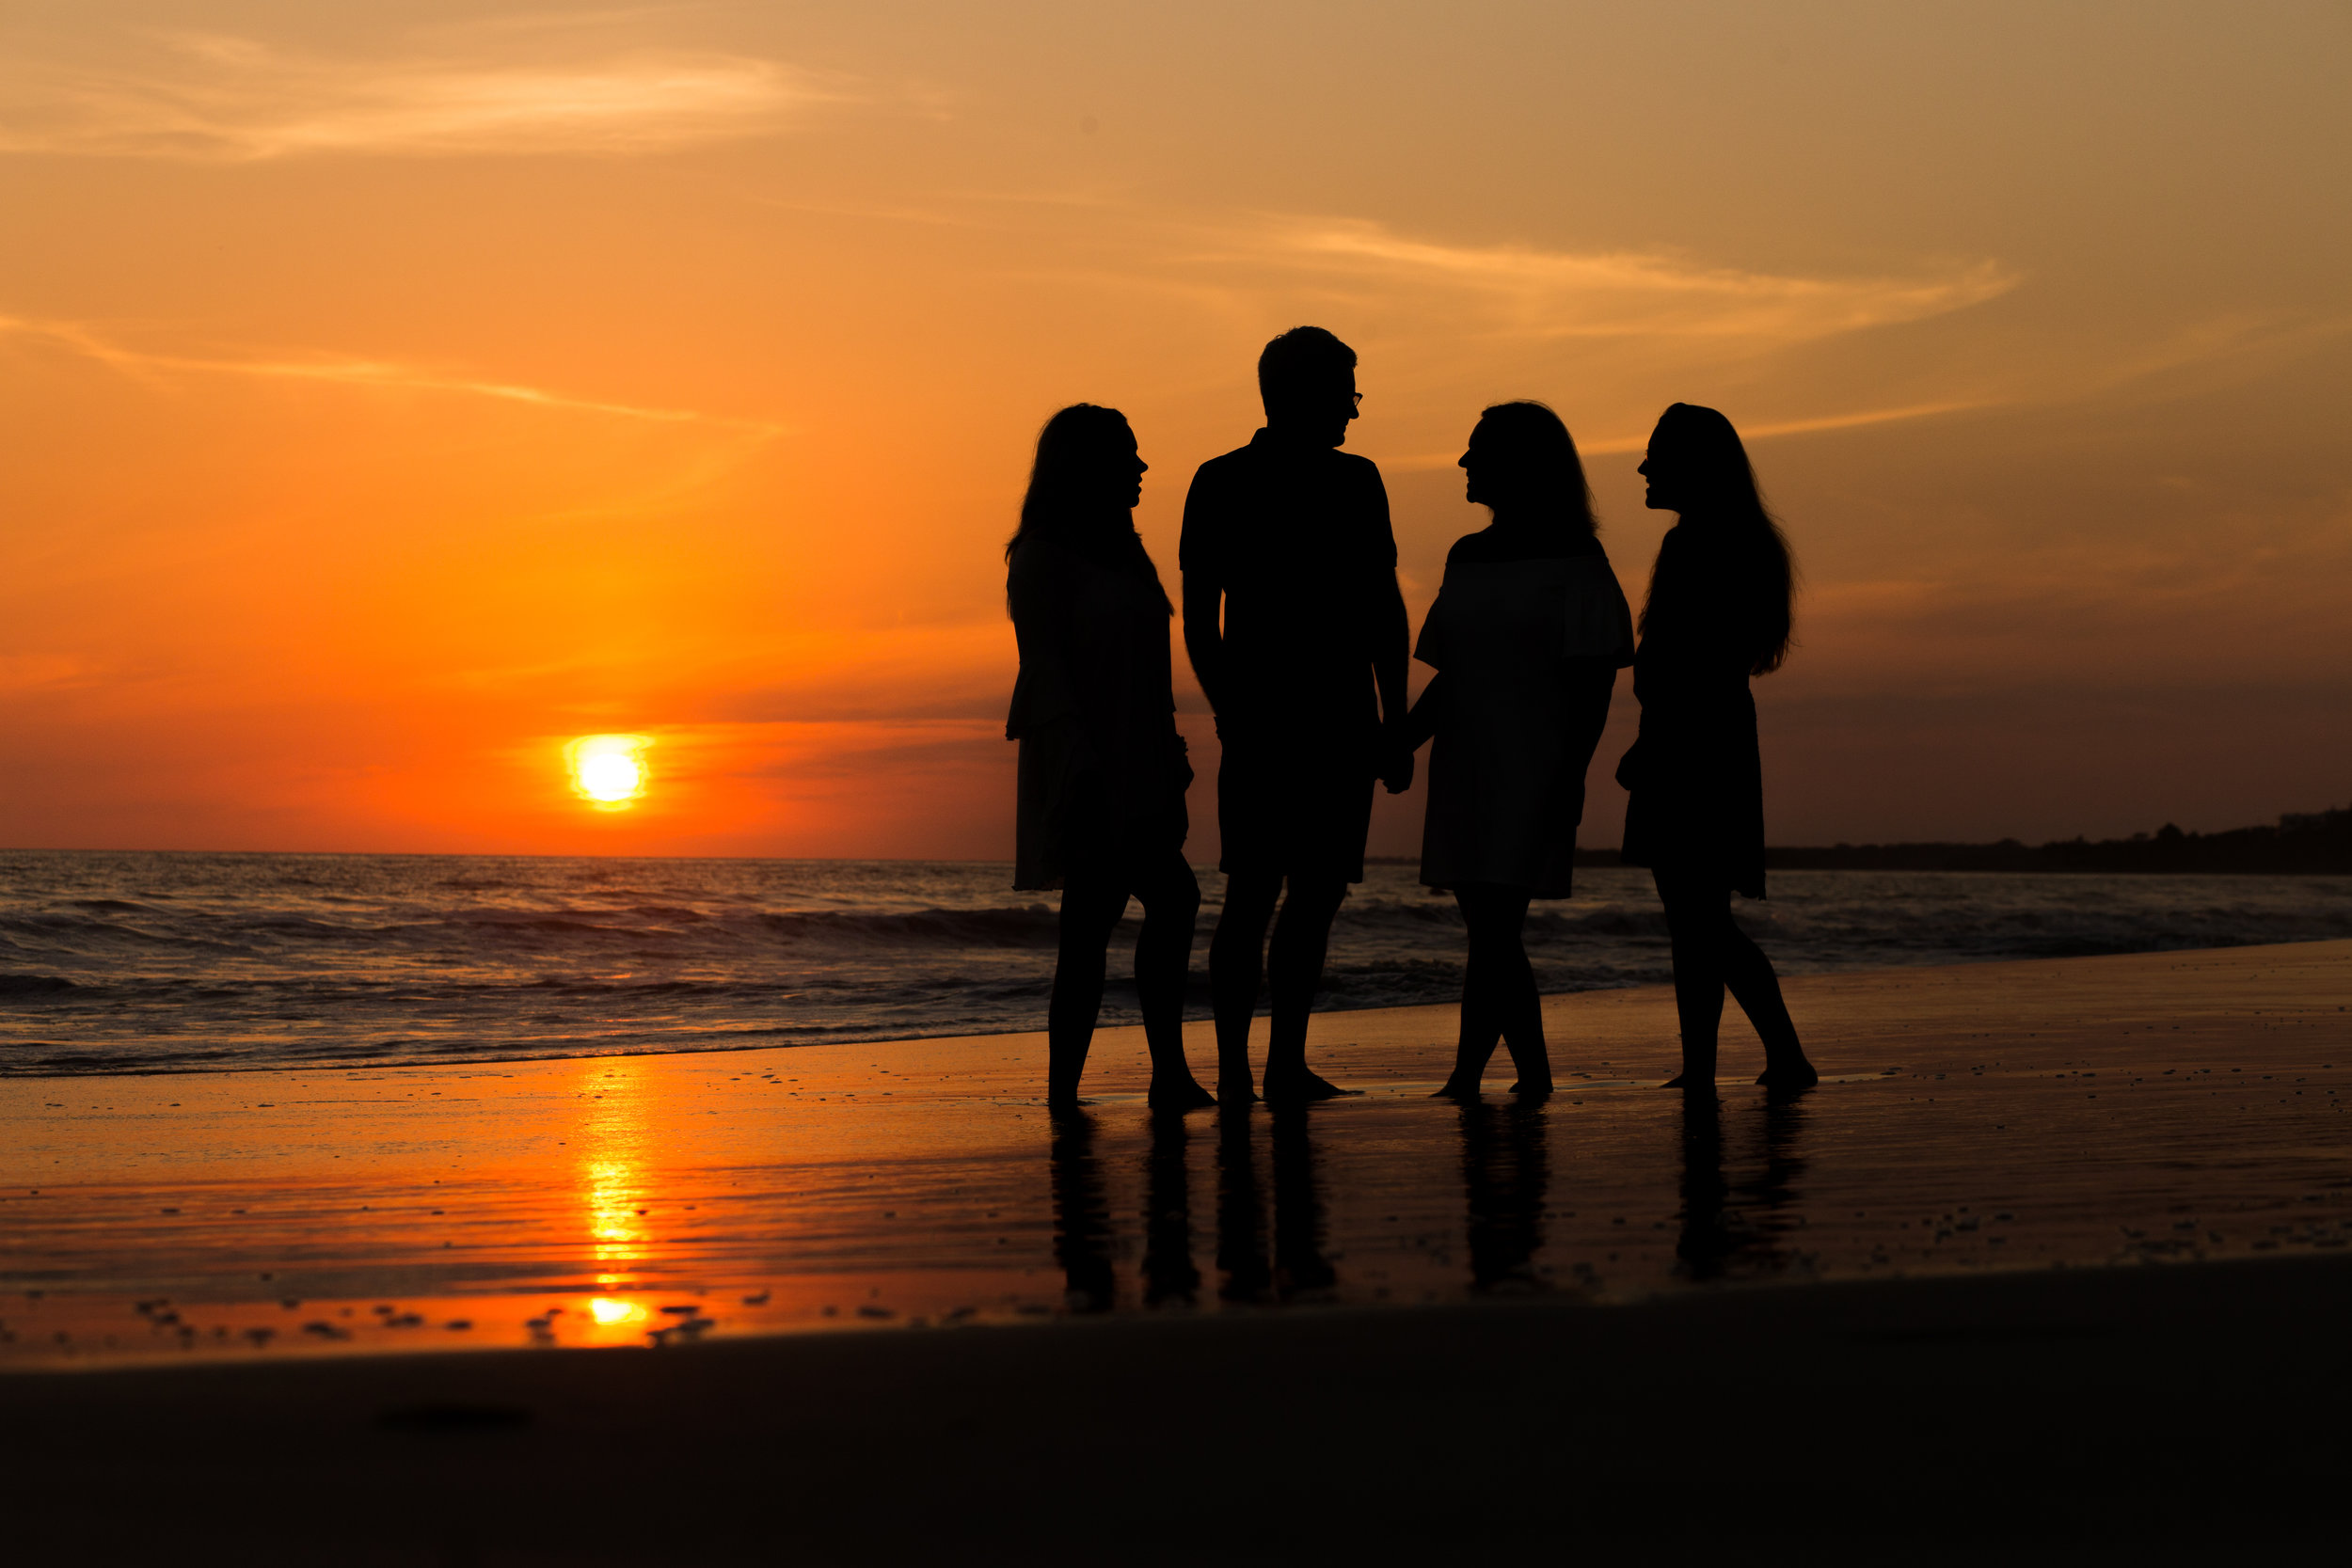 destination-sunset-family-photography-puerto-vallarta-mexico